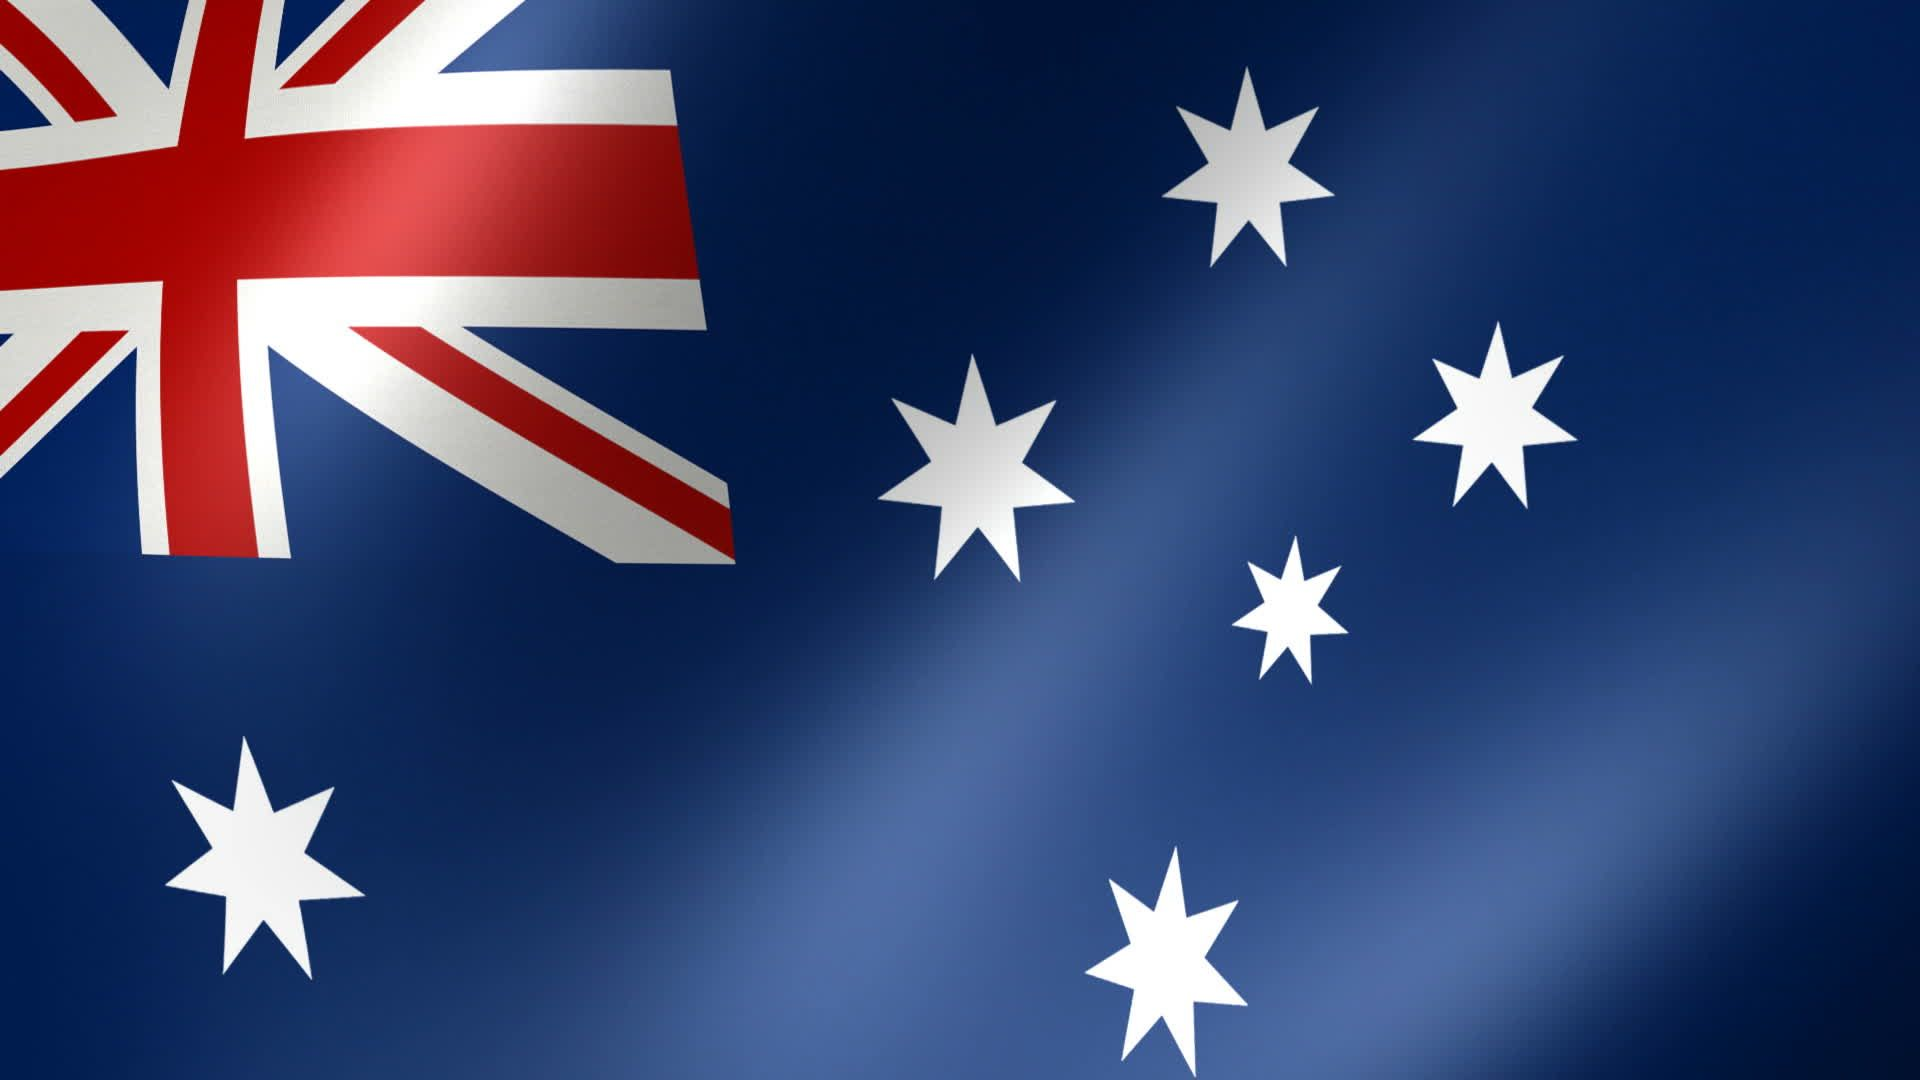 Buy Now Pay Later Industry Code launched in Australia to protect customers against rising debts